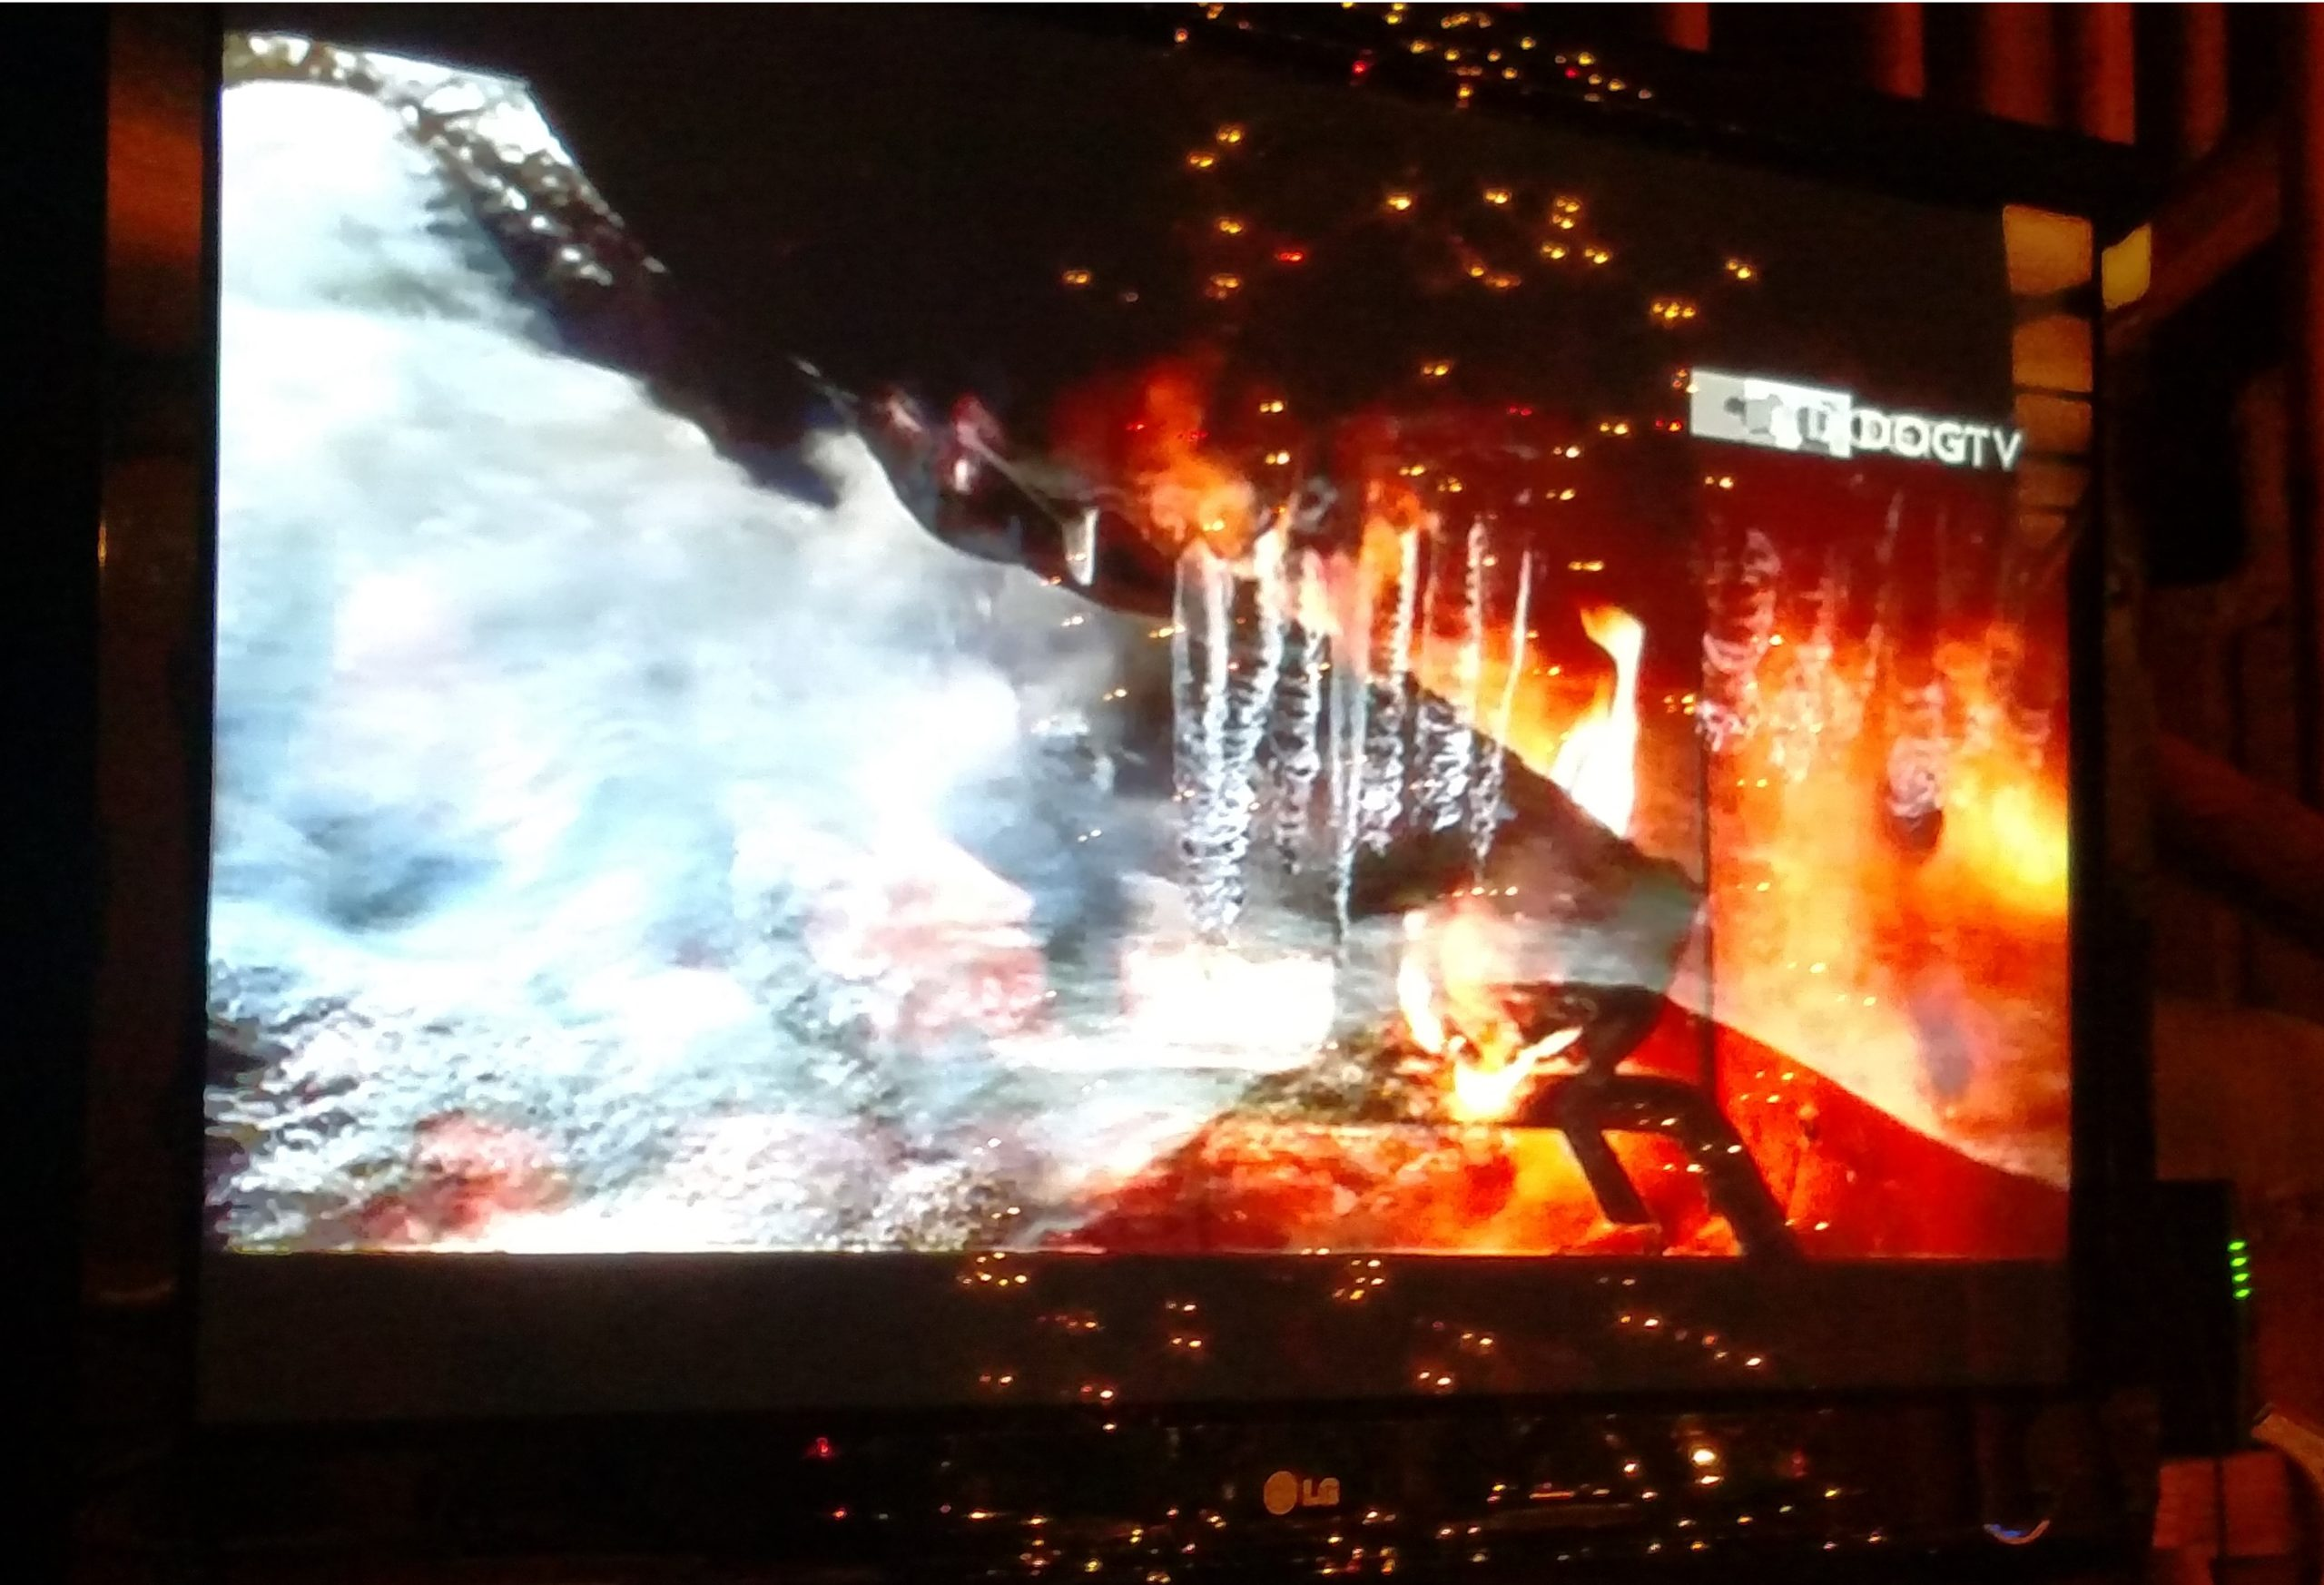 tv screen with image of ice and fire